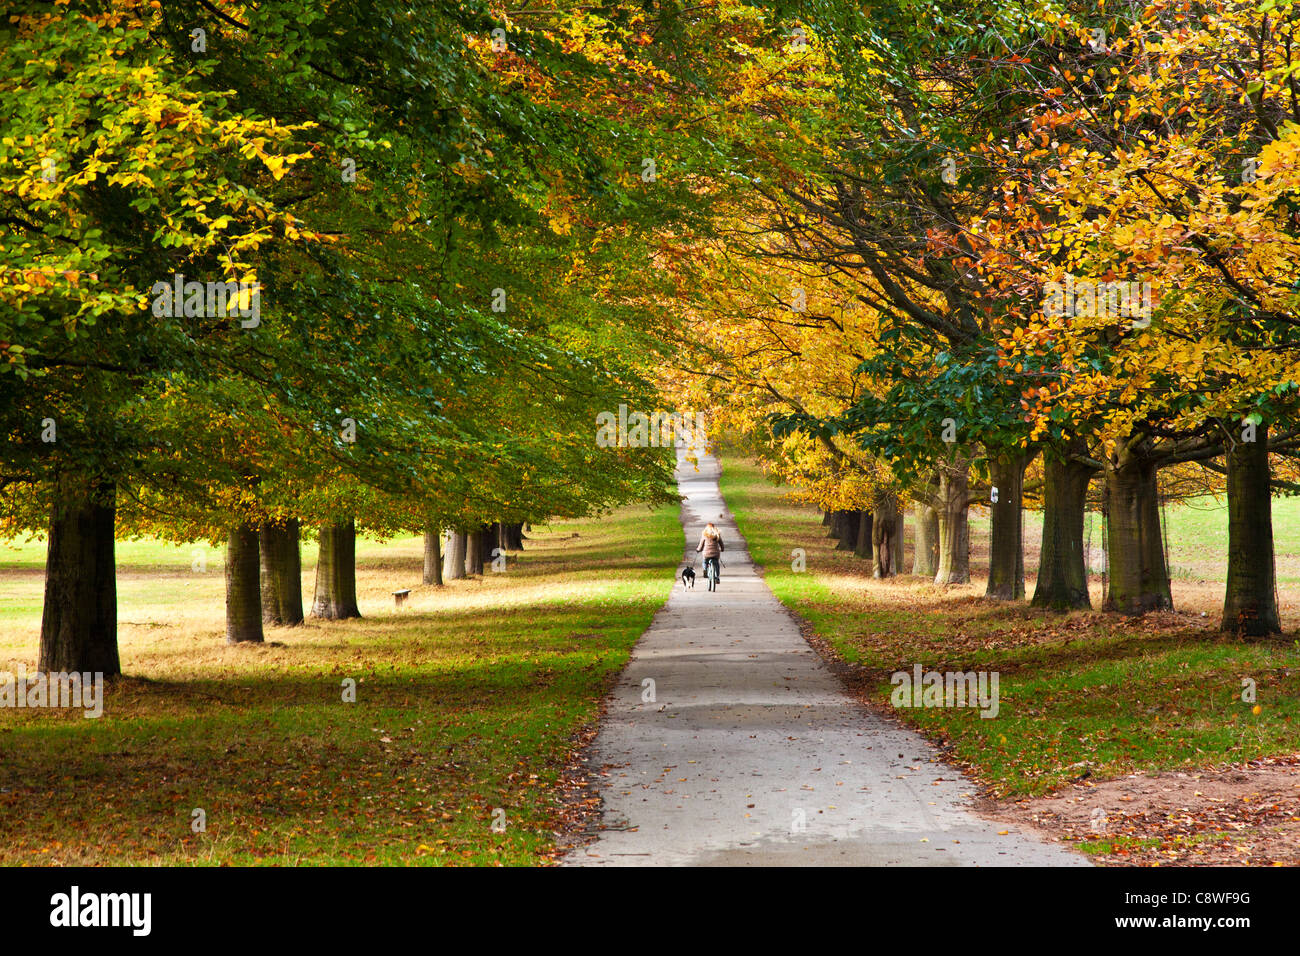 A woman cycling with dog along an avenue of autumn trees on a path at Wollaton Park, Nottingham, Nottinghamshire, - Stock Image